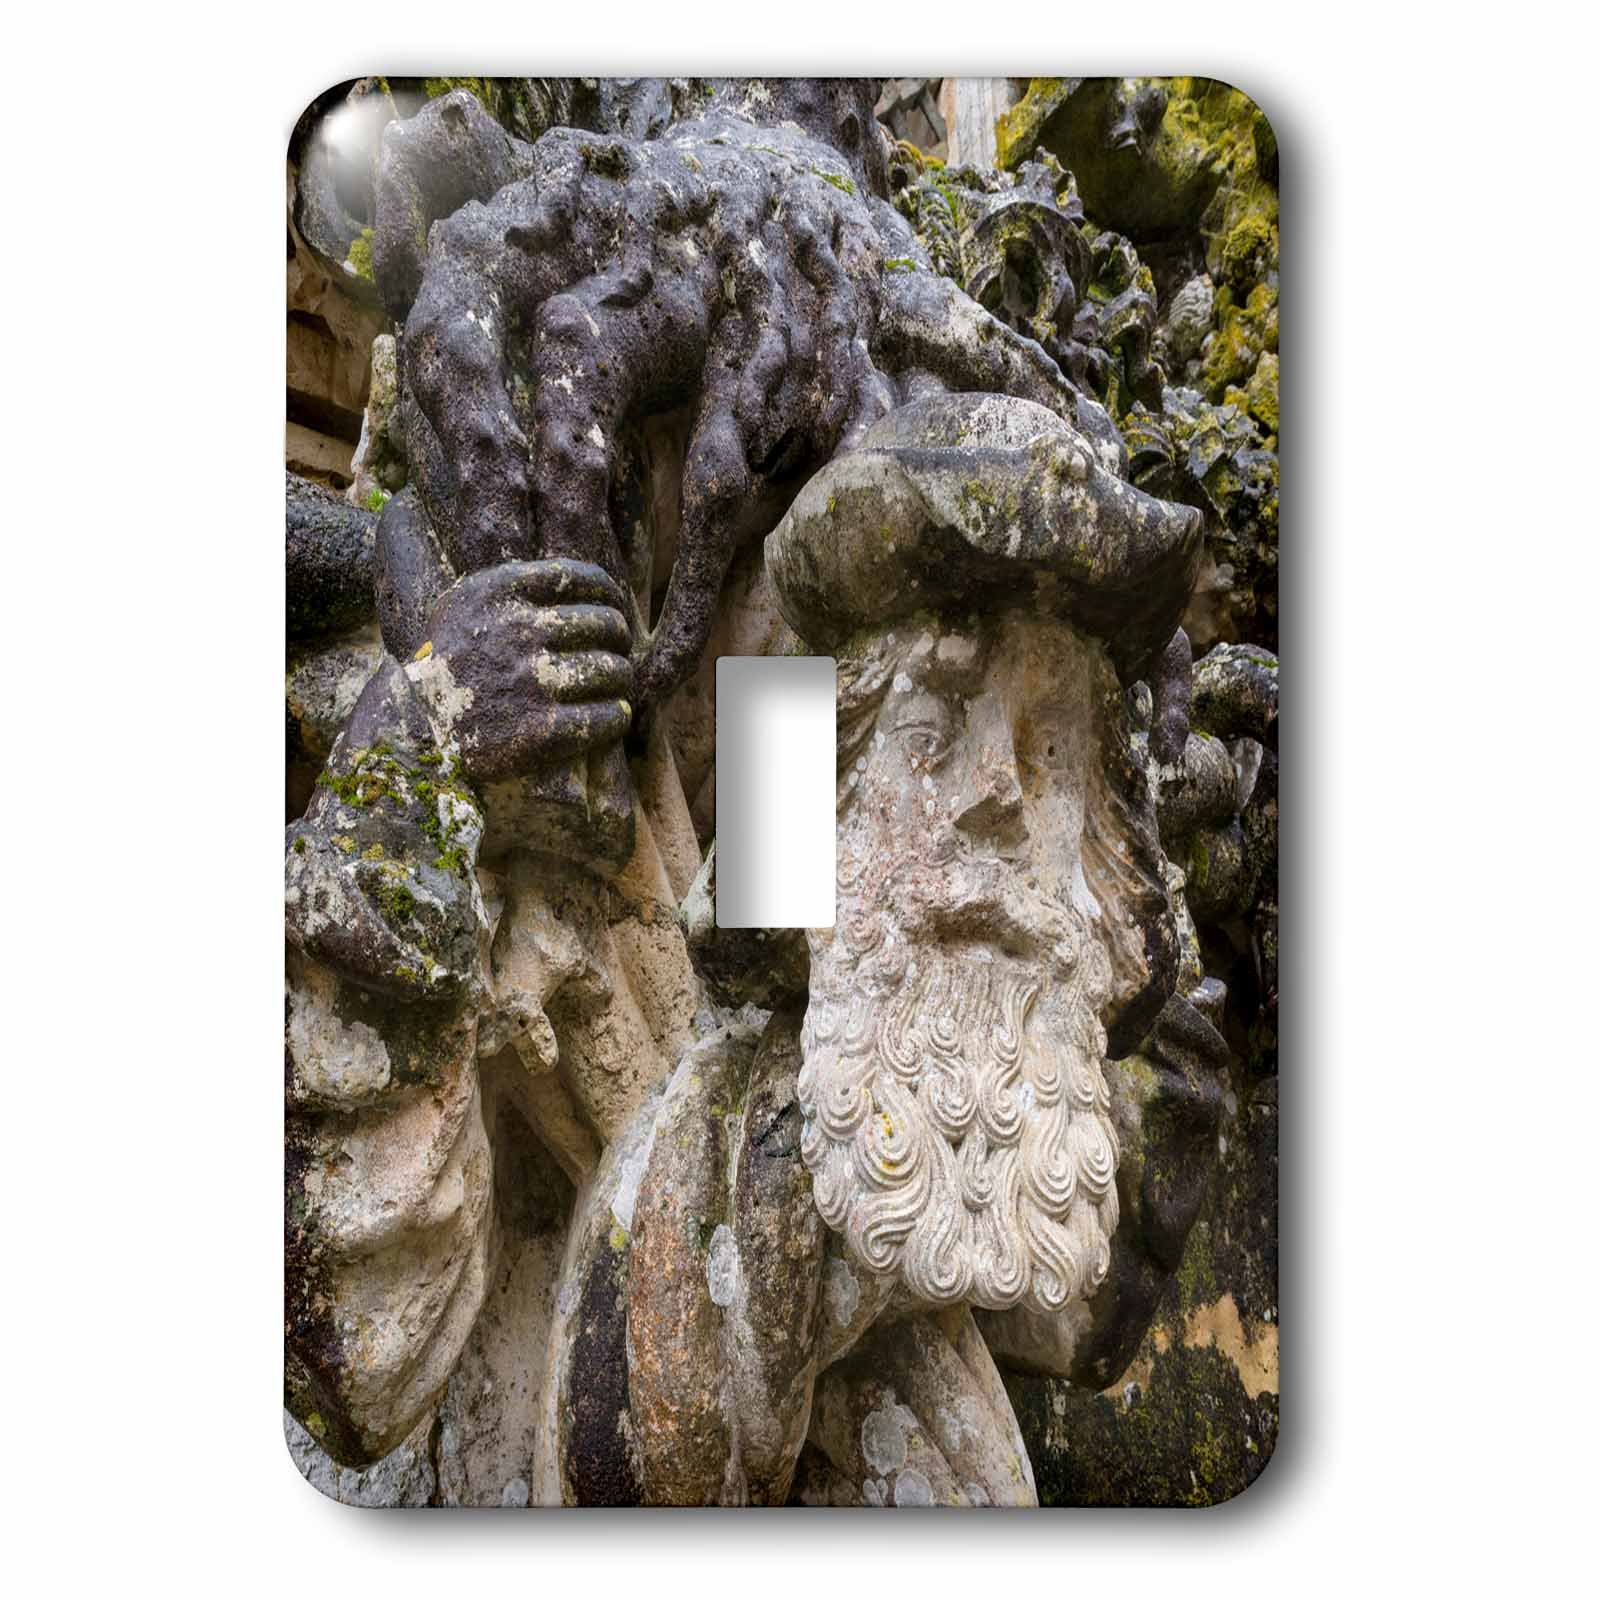 3dRose Danita Delimont - Religion - Face sculpture, Manueline Window, Convent of Christ, Tomar, Portugal - Light Switch Covers - single toggle switch (lsp_277808_1)